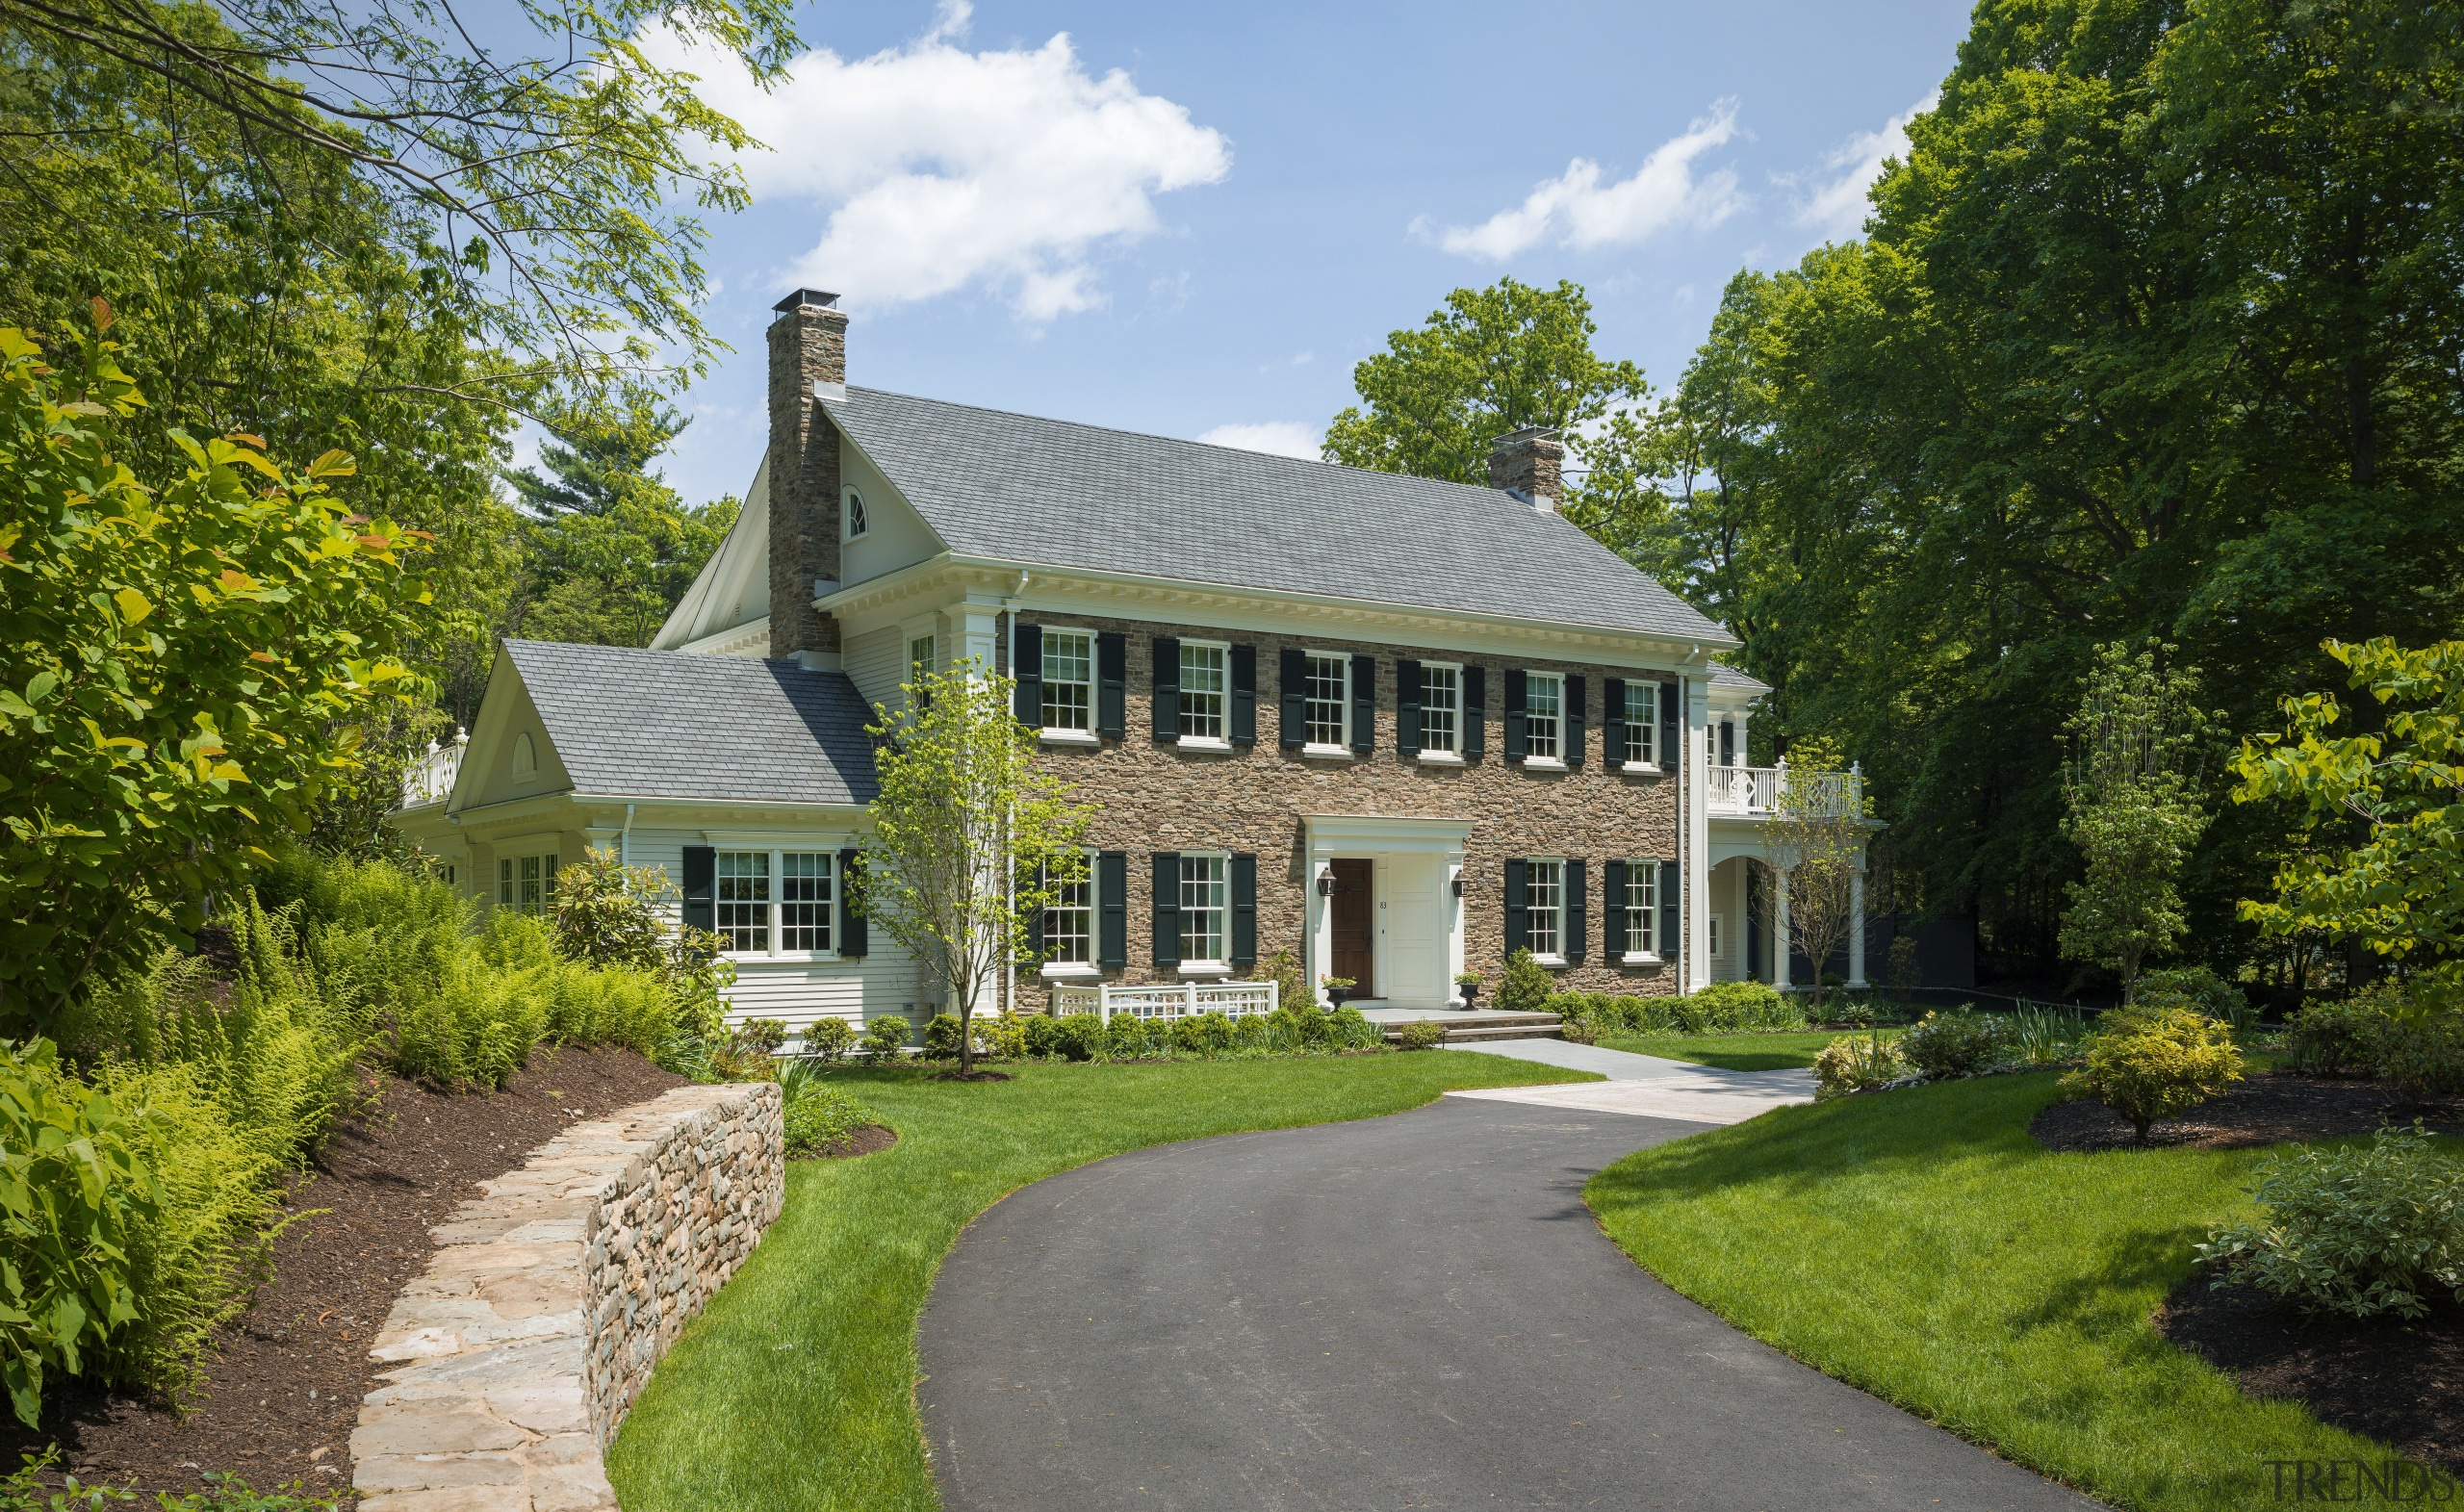 Curb appeal is assured with this New England cottage, estate, farmhouse, grass, home, house, manor house, mansion, national trust for places of historic interest or natural beauty, plantation, property, real estate, tree, brown